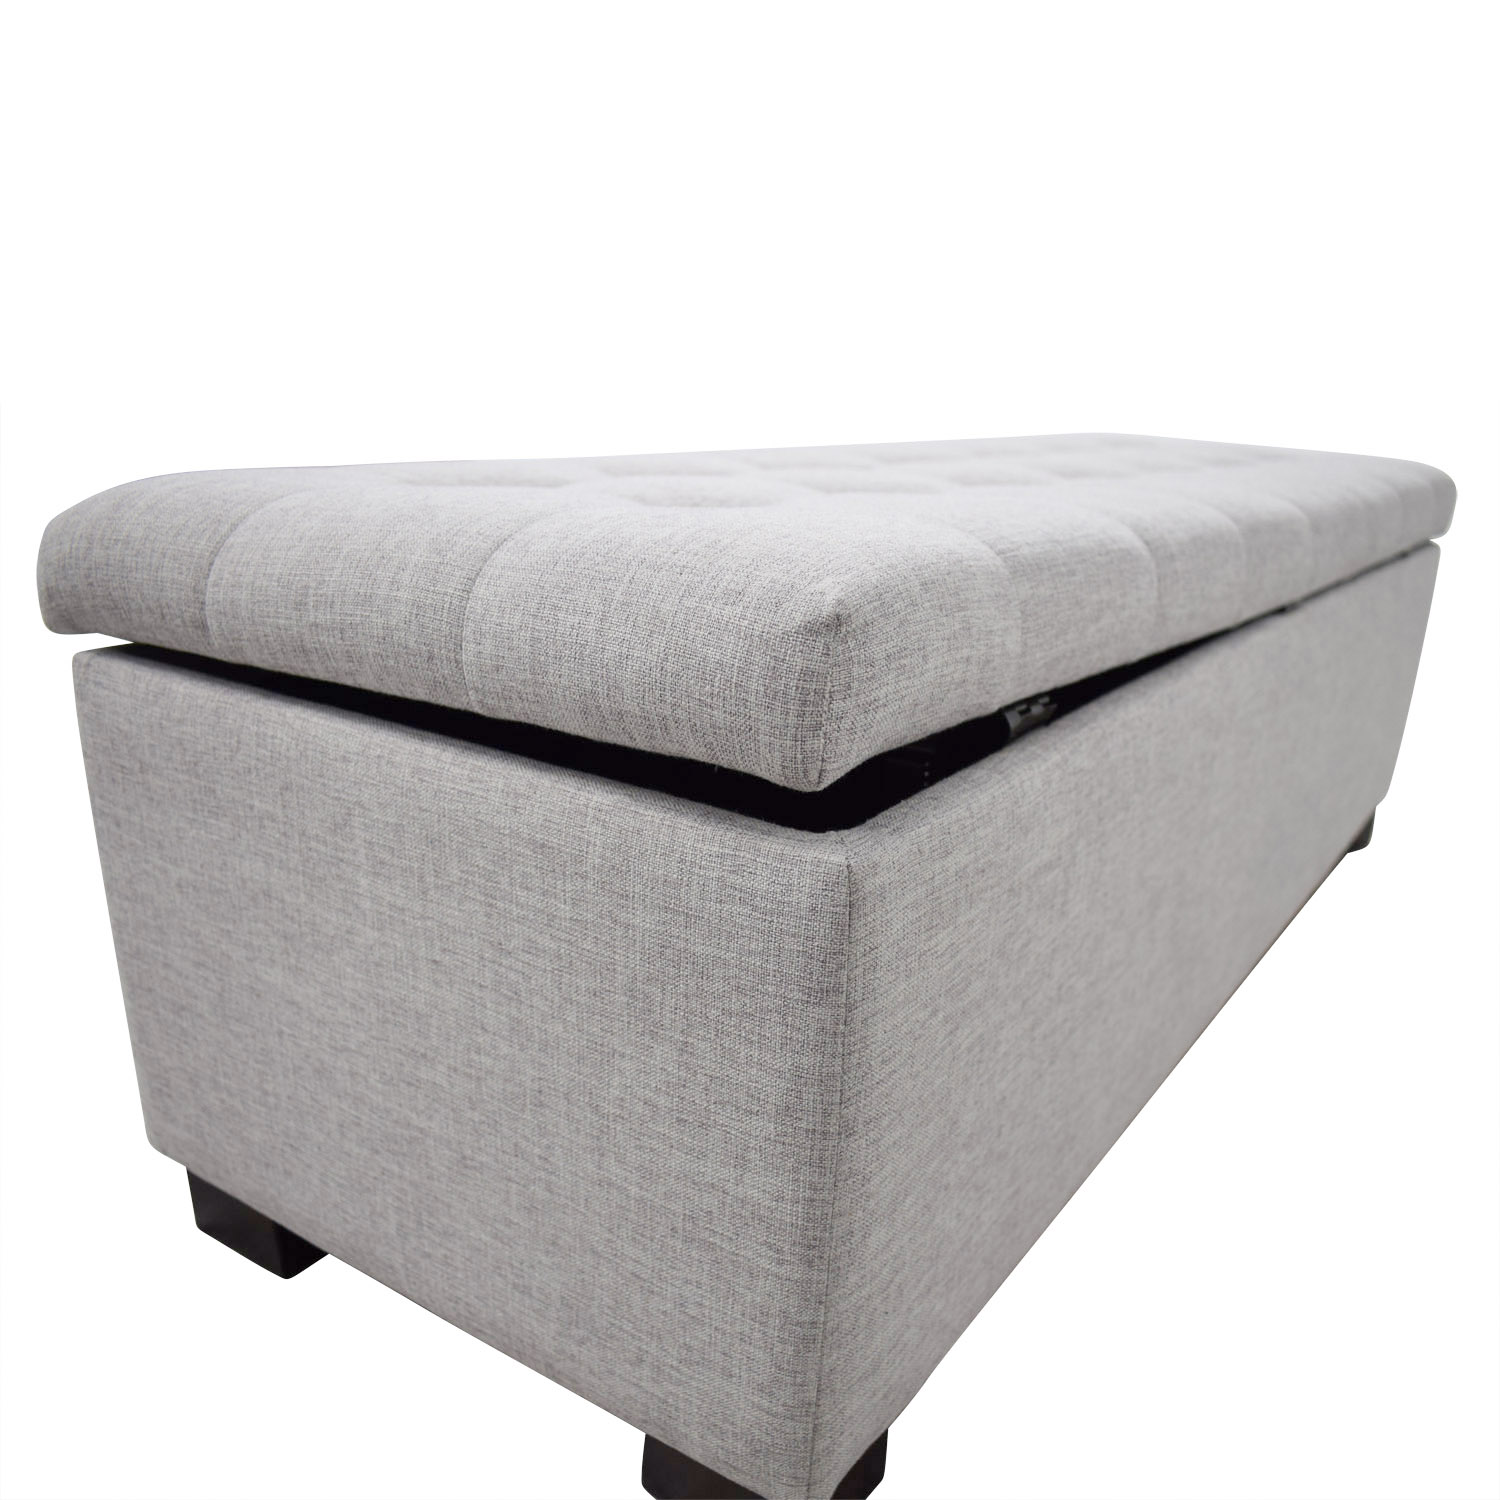 81 Off Wayfair Wayfair Grey Tufted Upholstered Storage